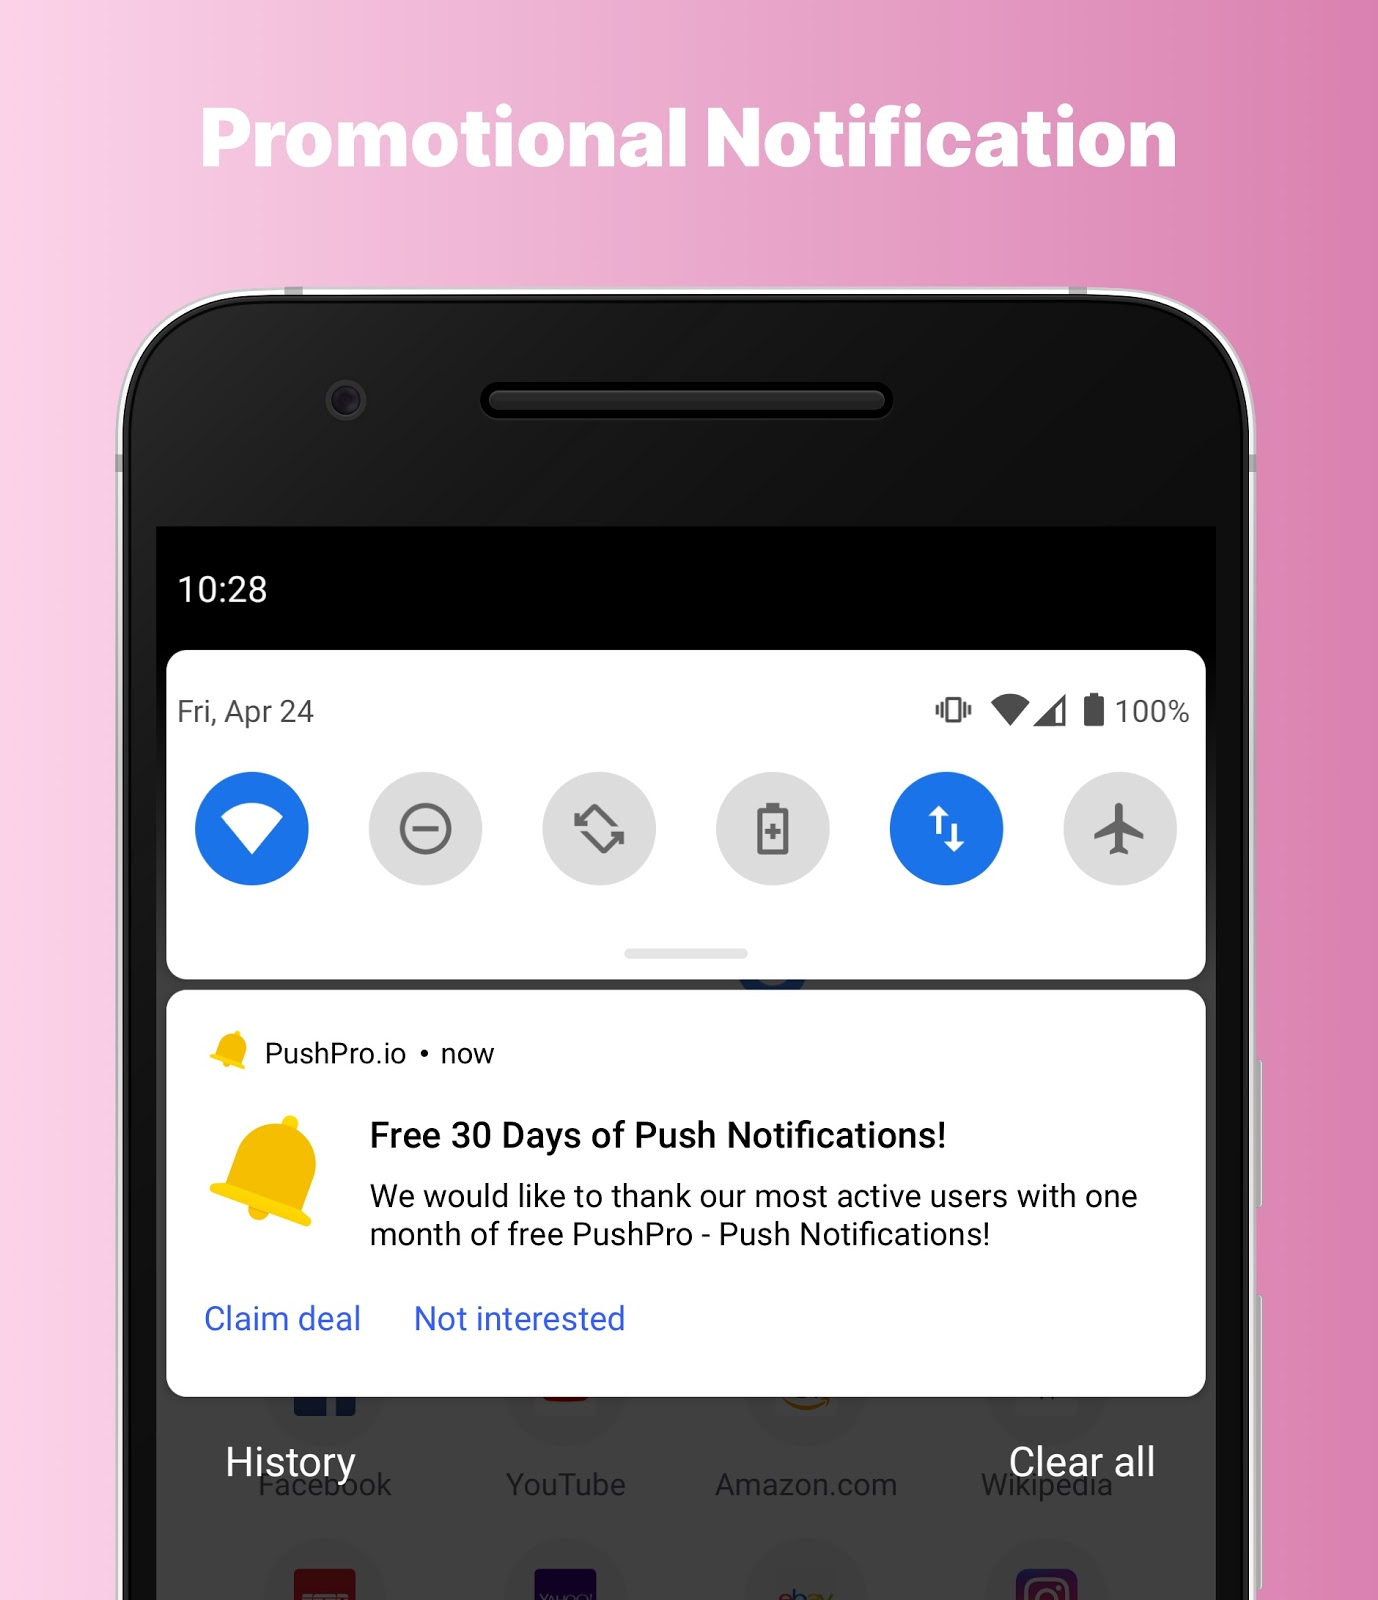 Example of a promotional push notification